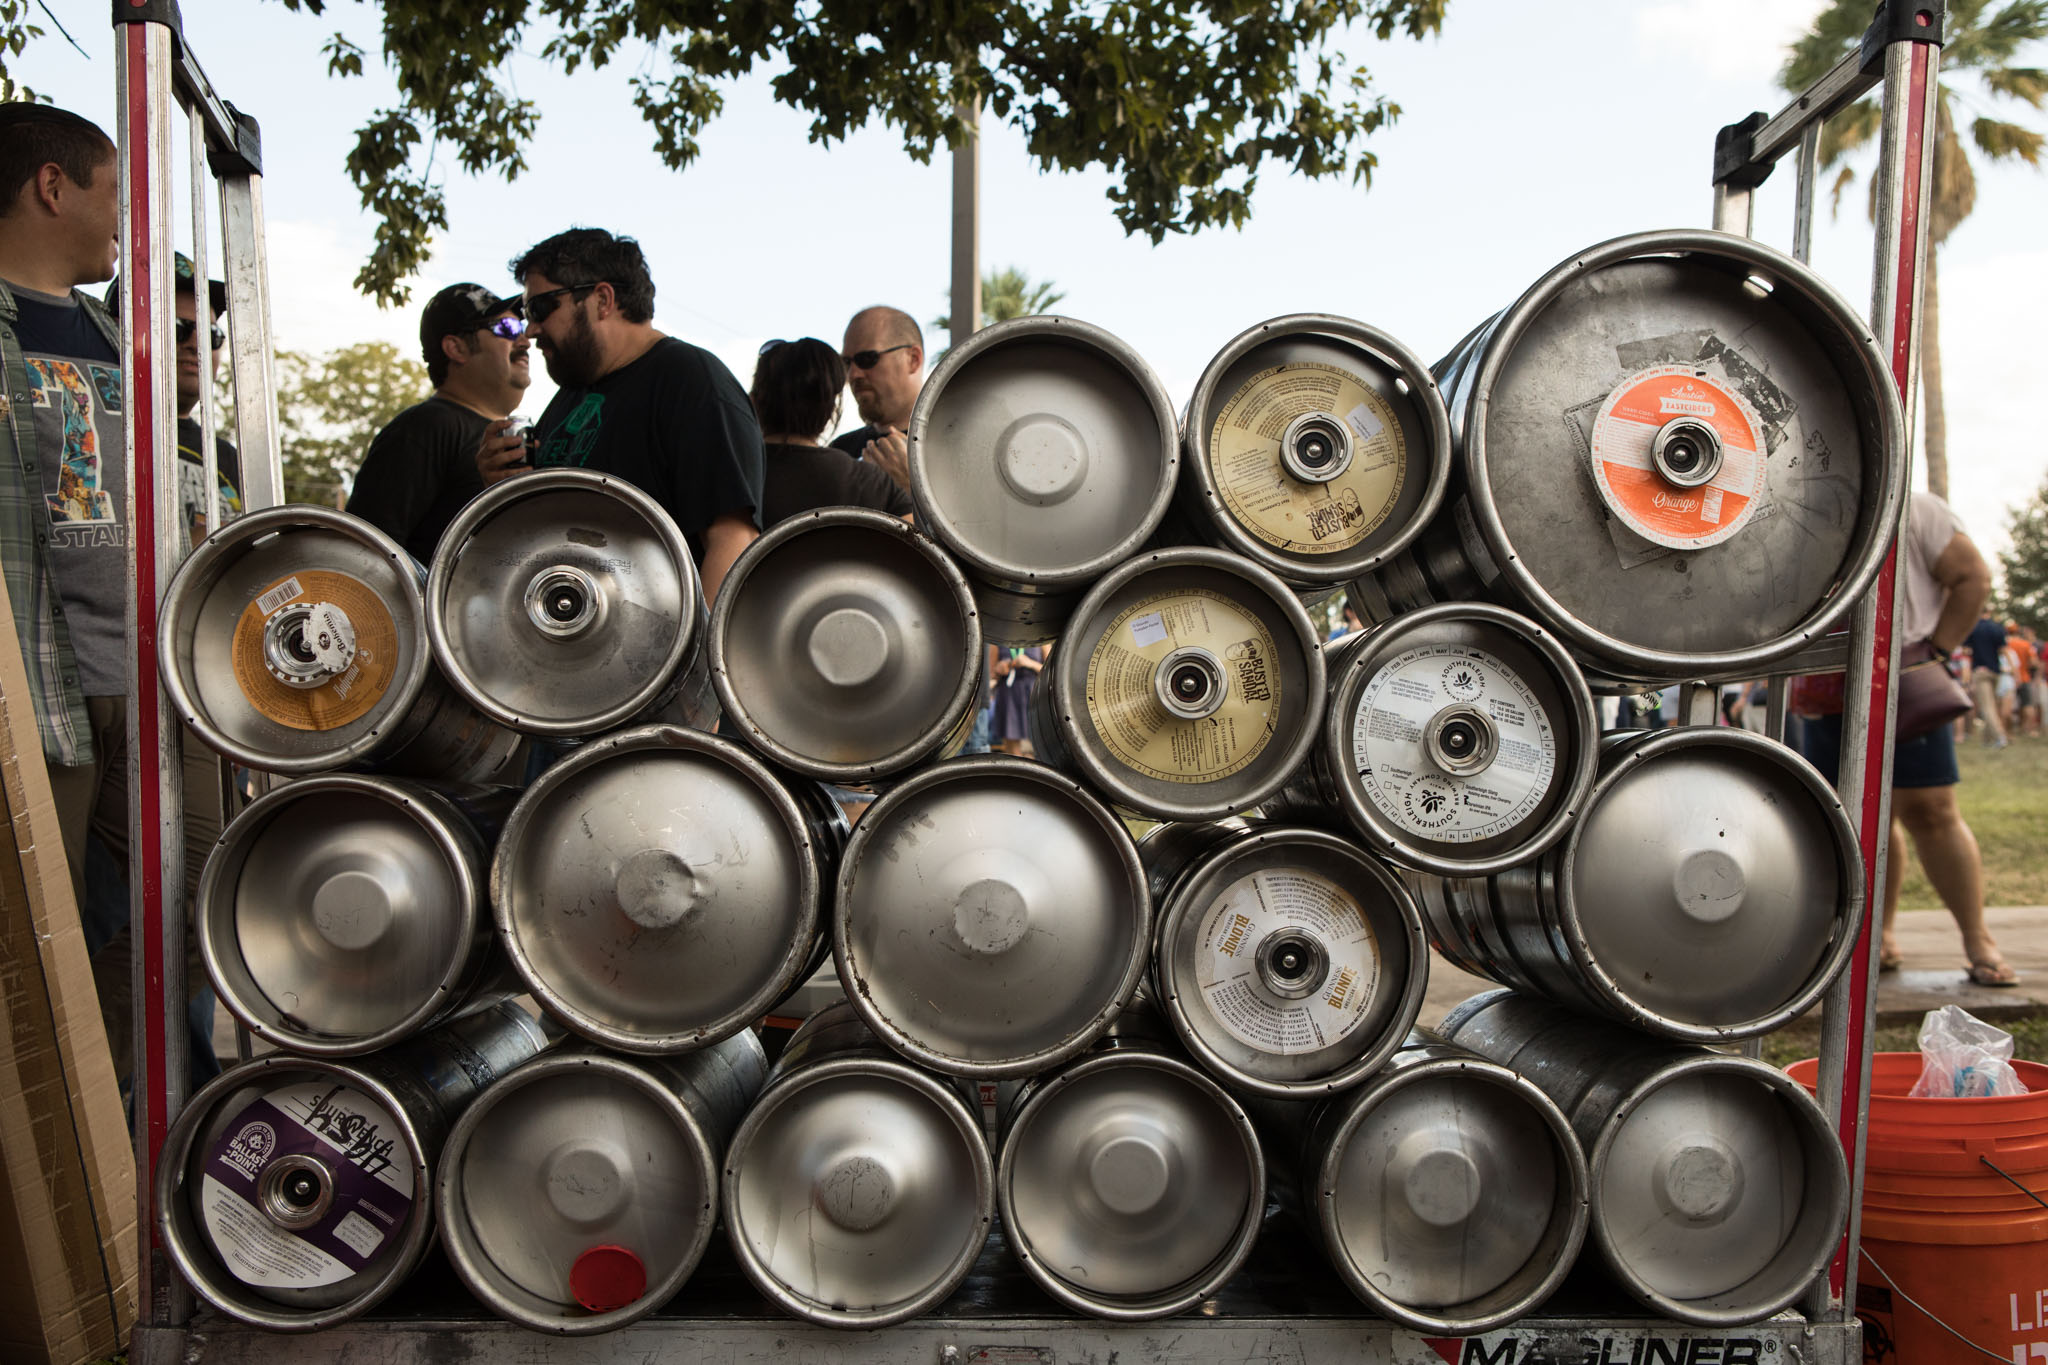 Kegs are stacked on top of one another at the San Antonio Beer Festival.